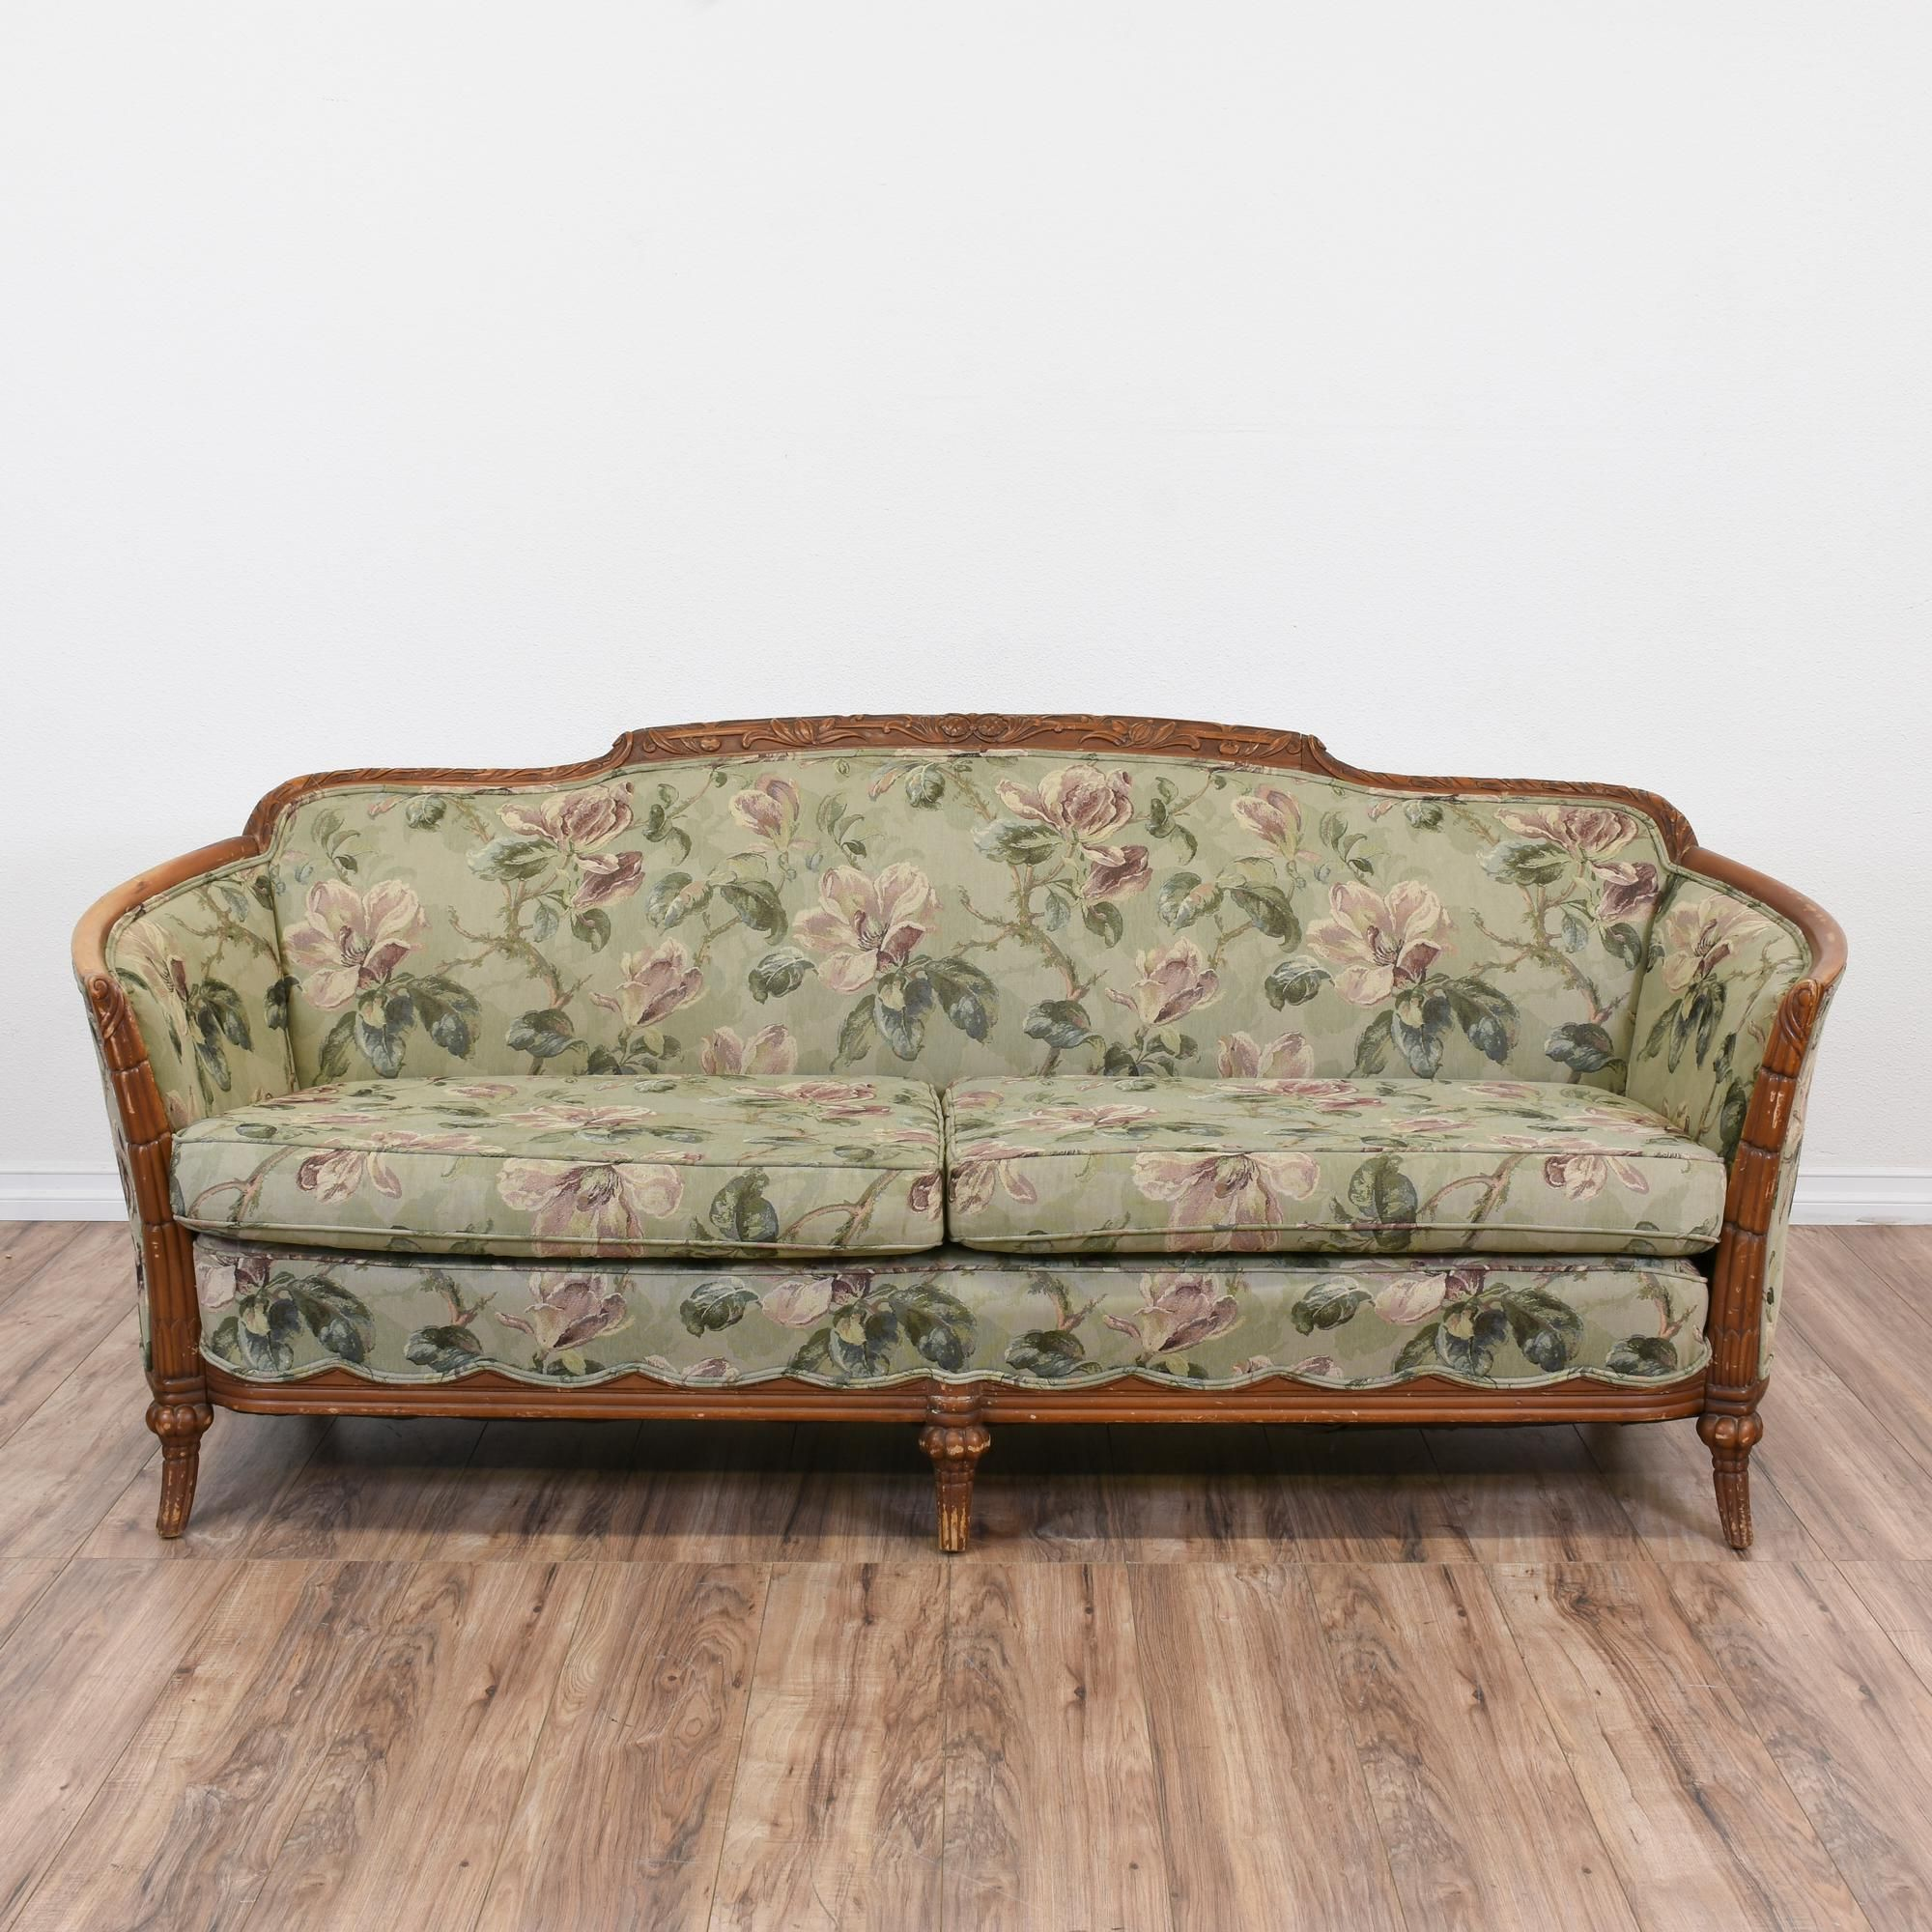 This Sofa Is Upholstered In A Durable Sage Green